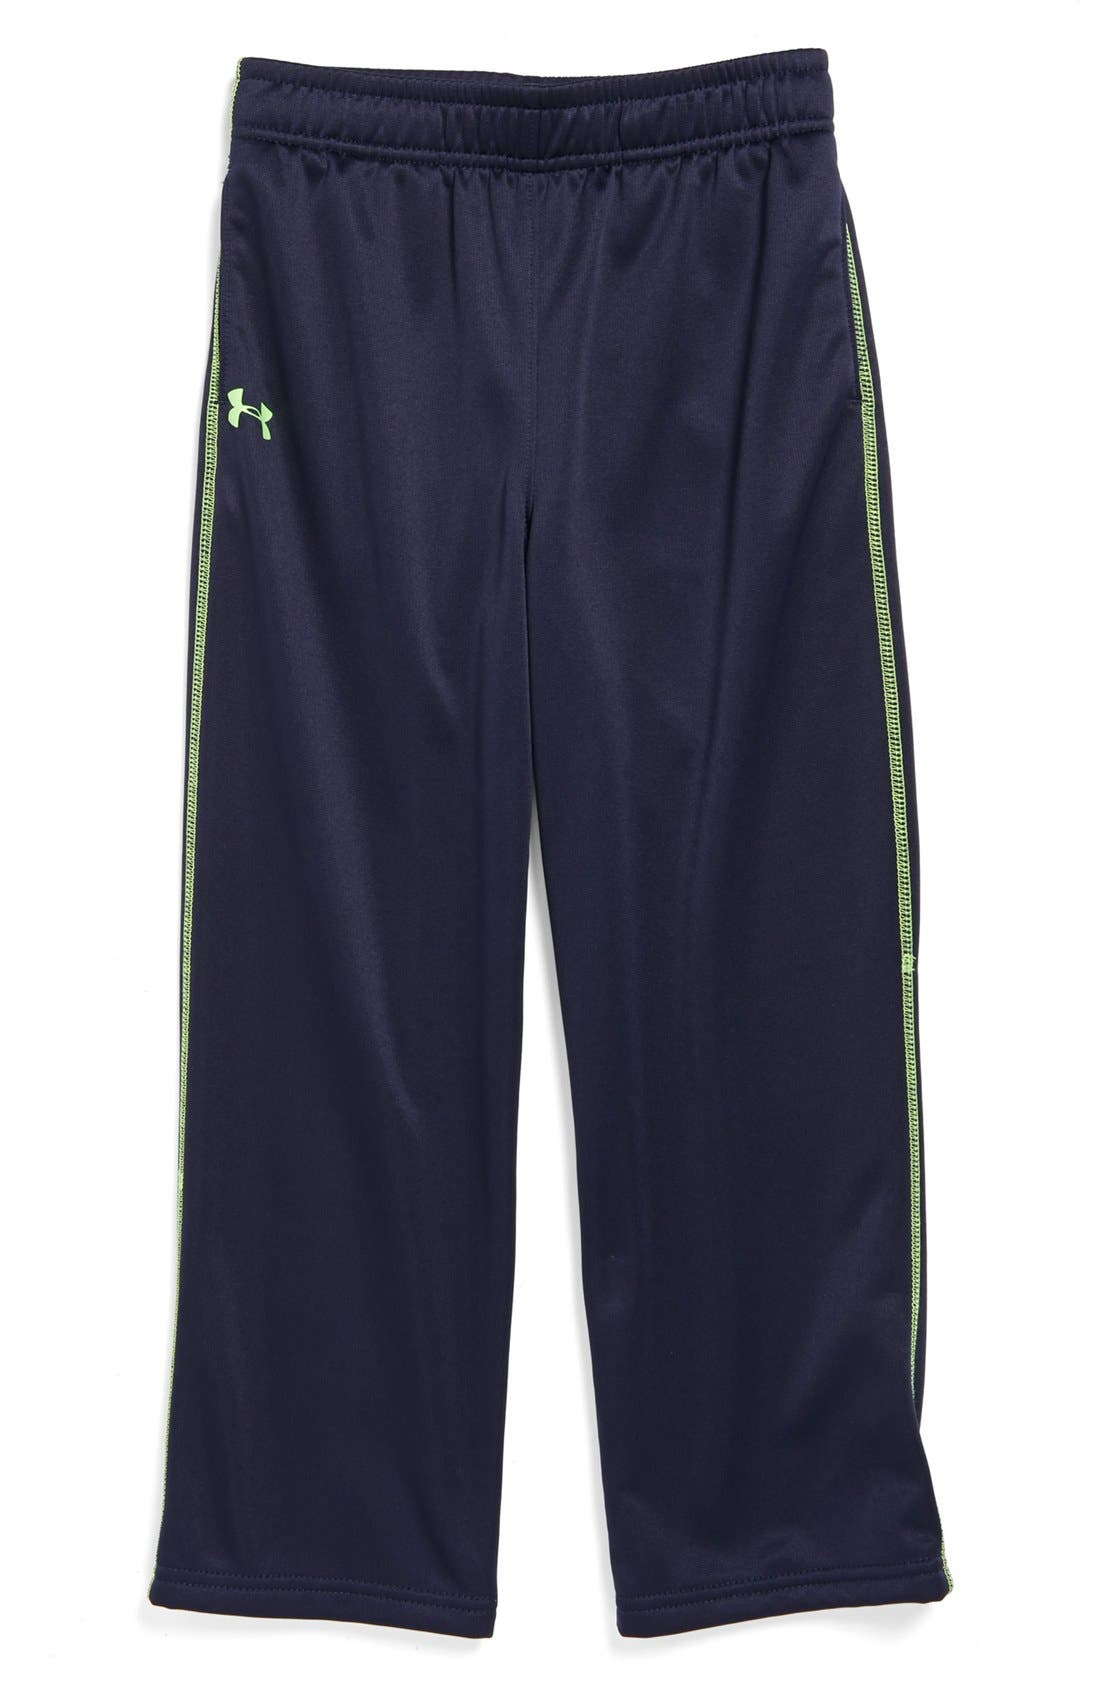 Alternate Image 1 Selected - Under Armour Fleece Lined AllSeasonGear® Pants (Little Boys)